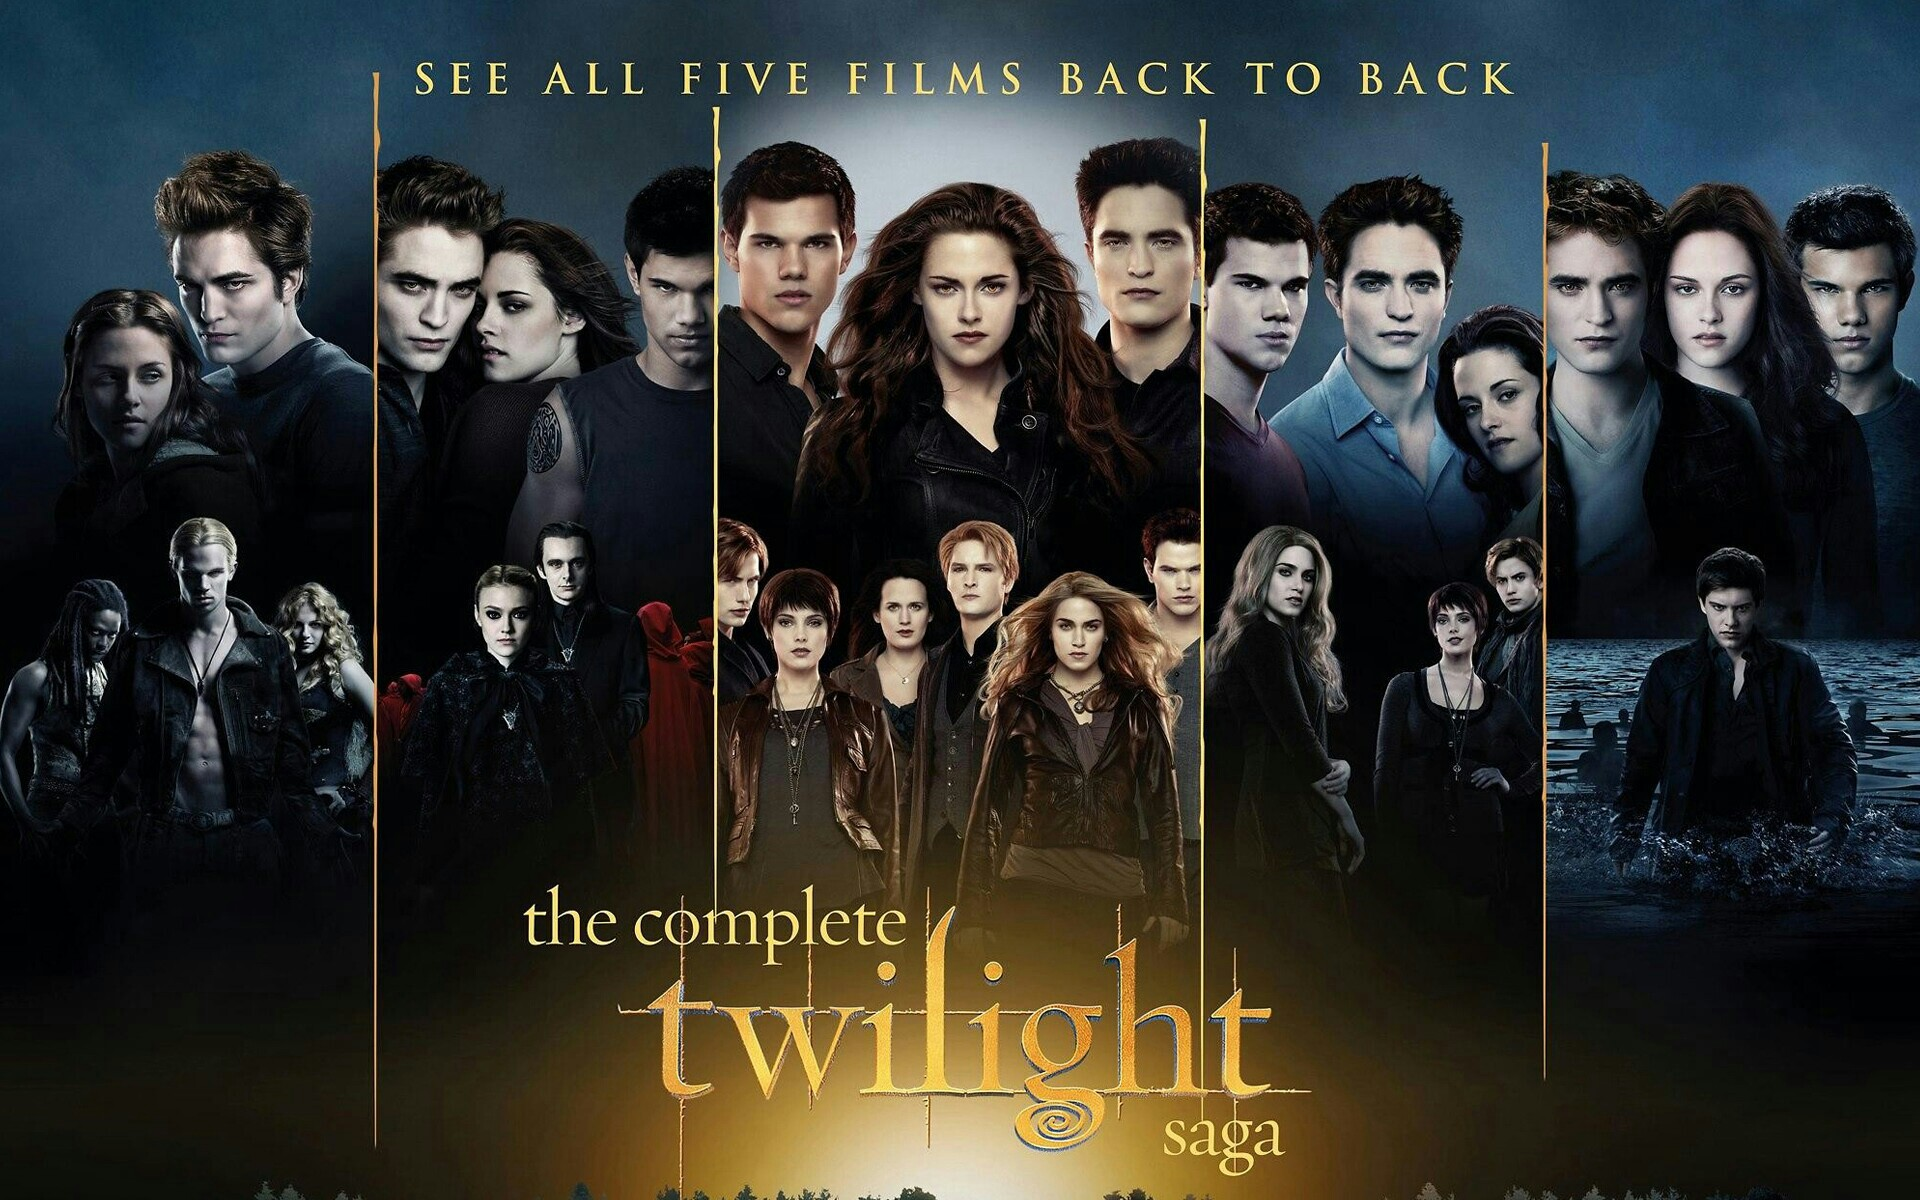 Image the complete twilight saga wallpapers desktop movieg the complete twilight saga wallpapers desktop movieg voltagebd Choice Image